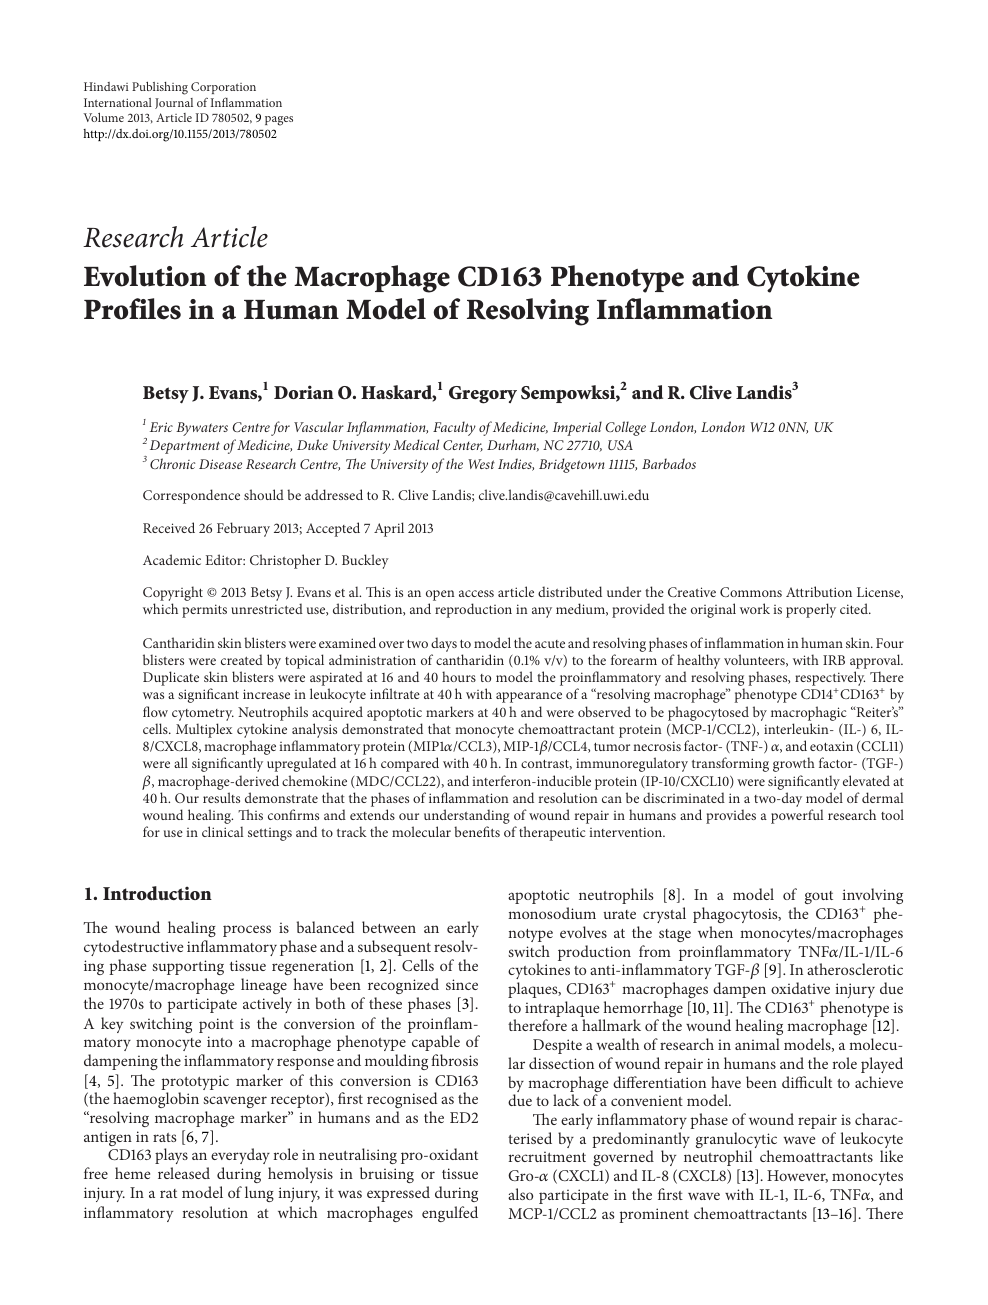 Evolution Of The Macrophage Cd163 Phenotype And Cytokine Profiles In A Human Model Of Resolving Inflammation Topic Of Research Paper In Clinical Medicine Download Scholarly Article Pdf And Read For Free